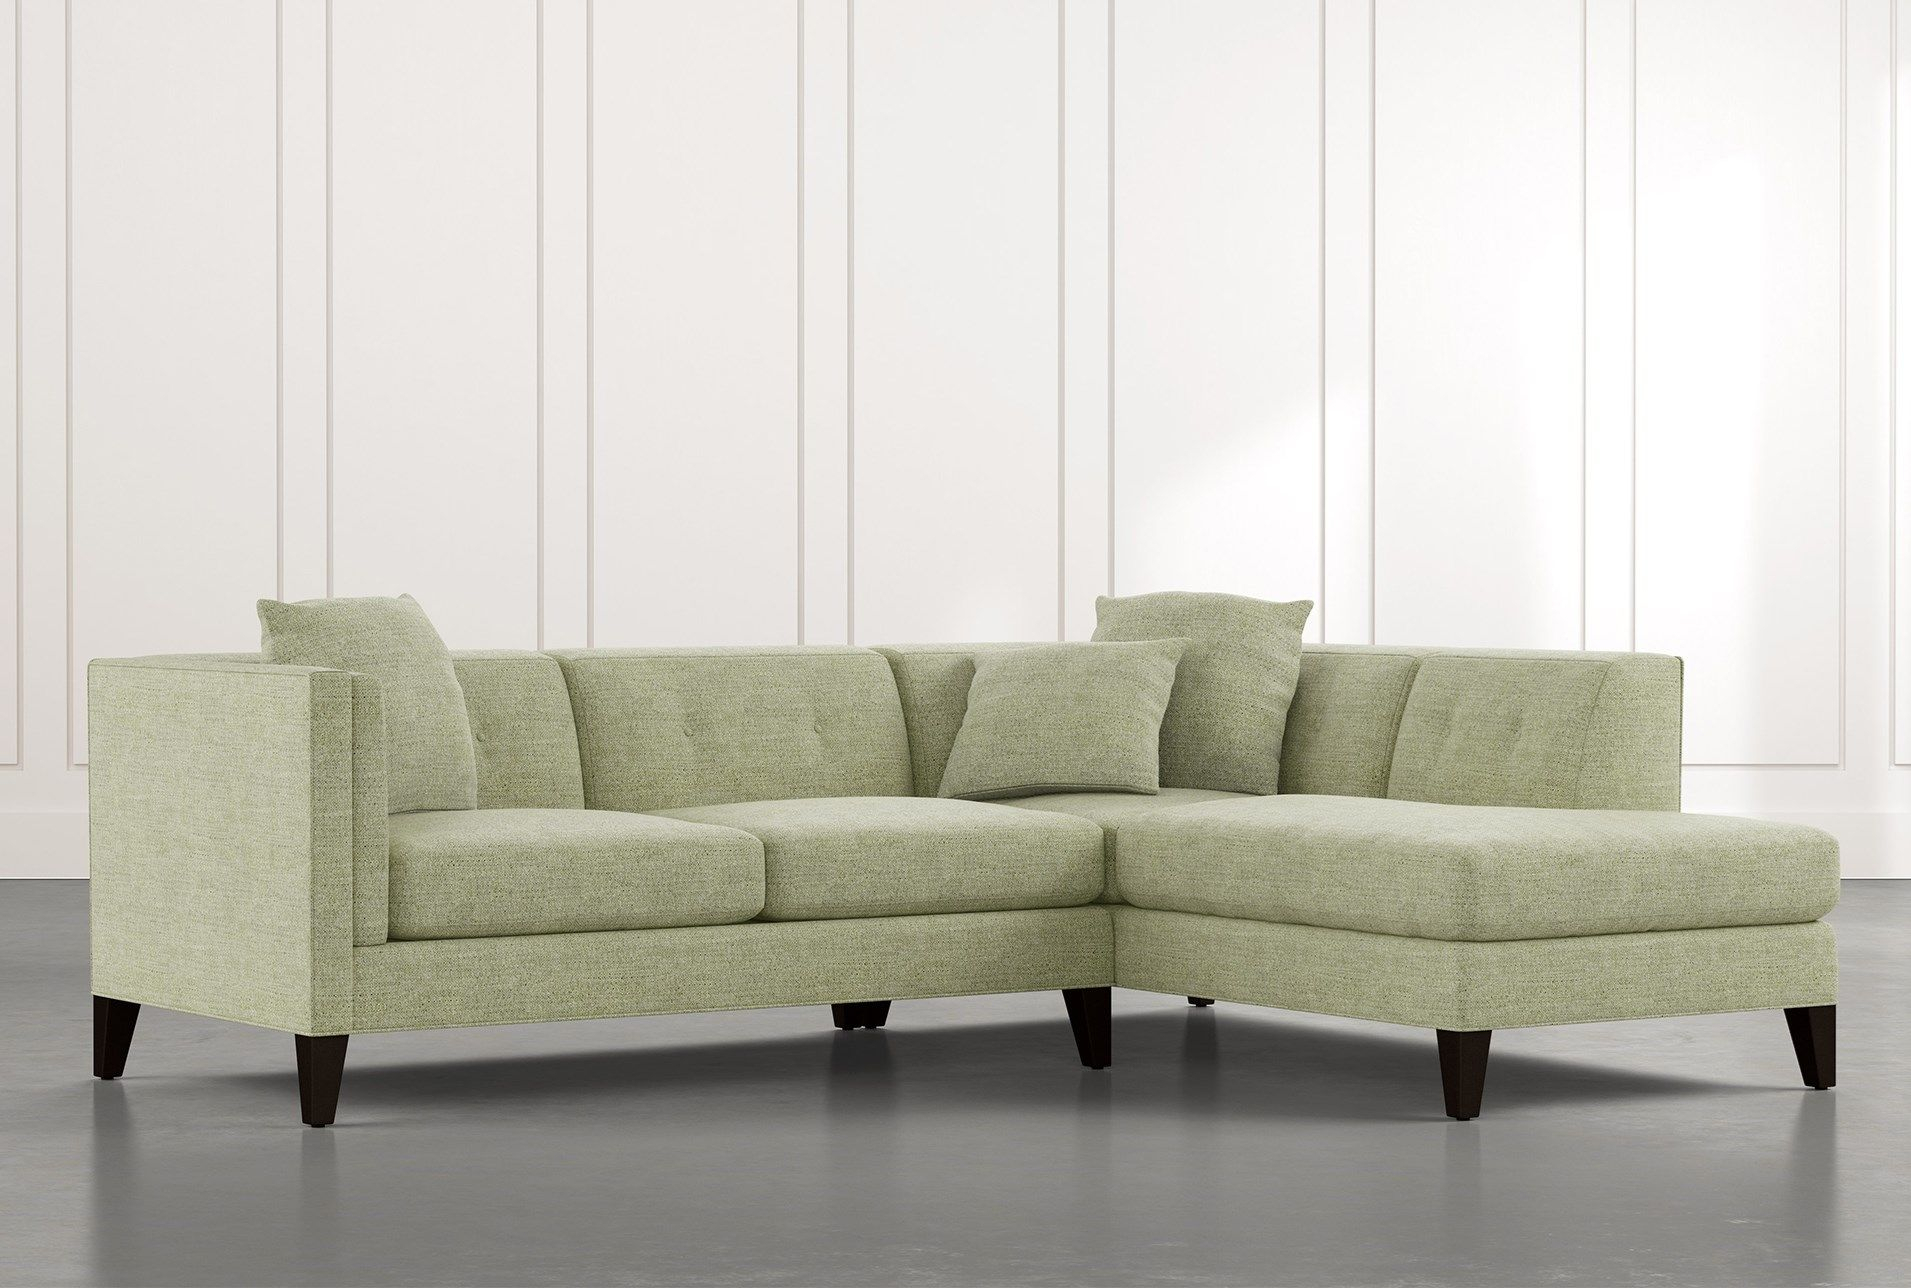 Avery Ii Green 2 Piece Sectional With Right Arm Facing With Regard To Avery 2 Piece Sectionals With Laf Armless Chaise (View 3 of 15)